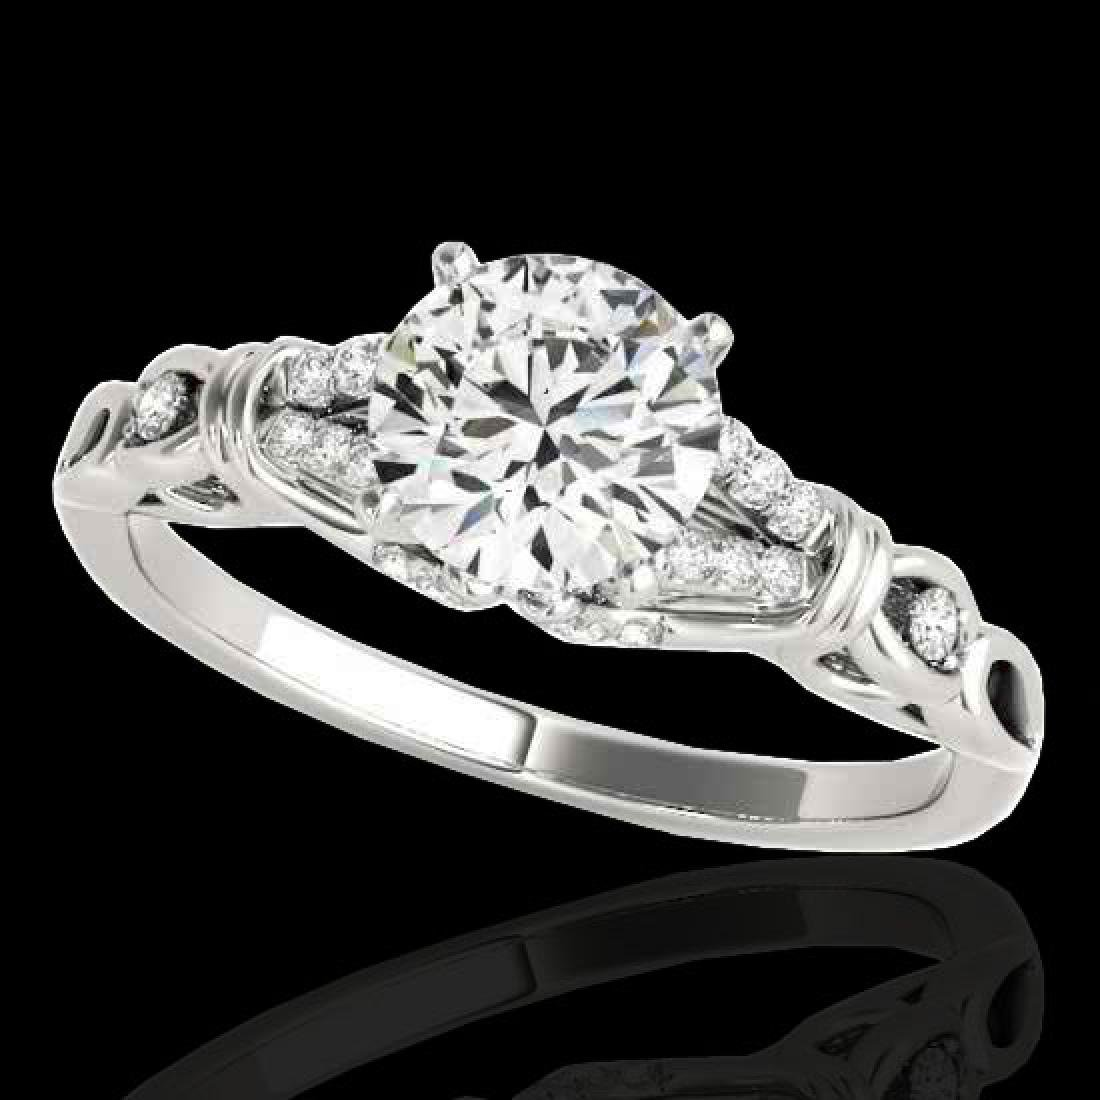 1.2 CTW H-SI/I Certified Diamond Solitaire Ring 10K